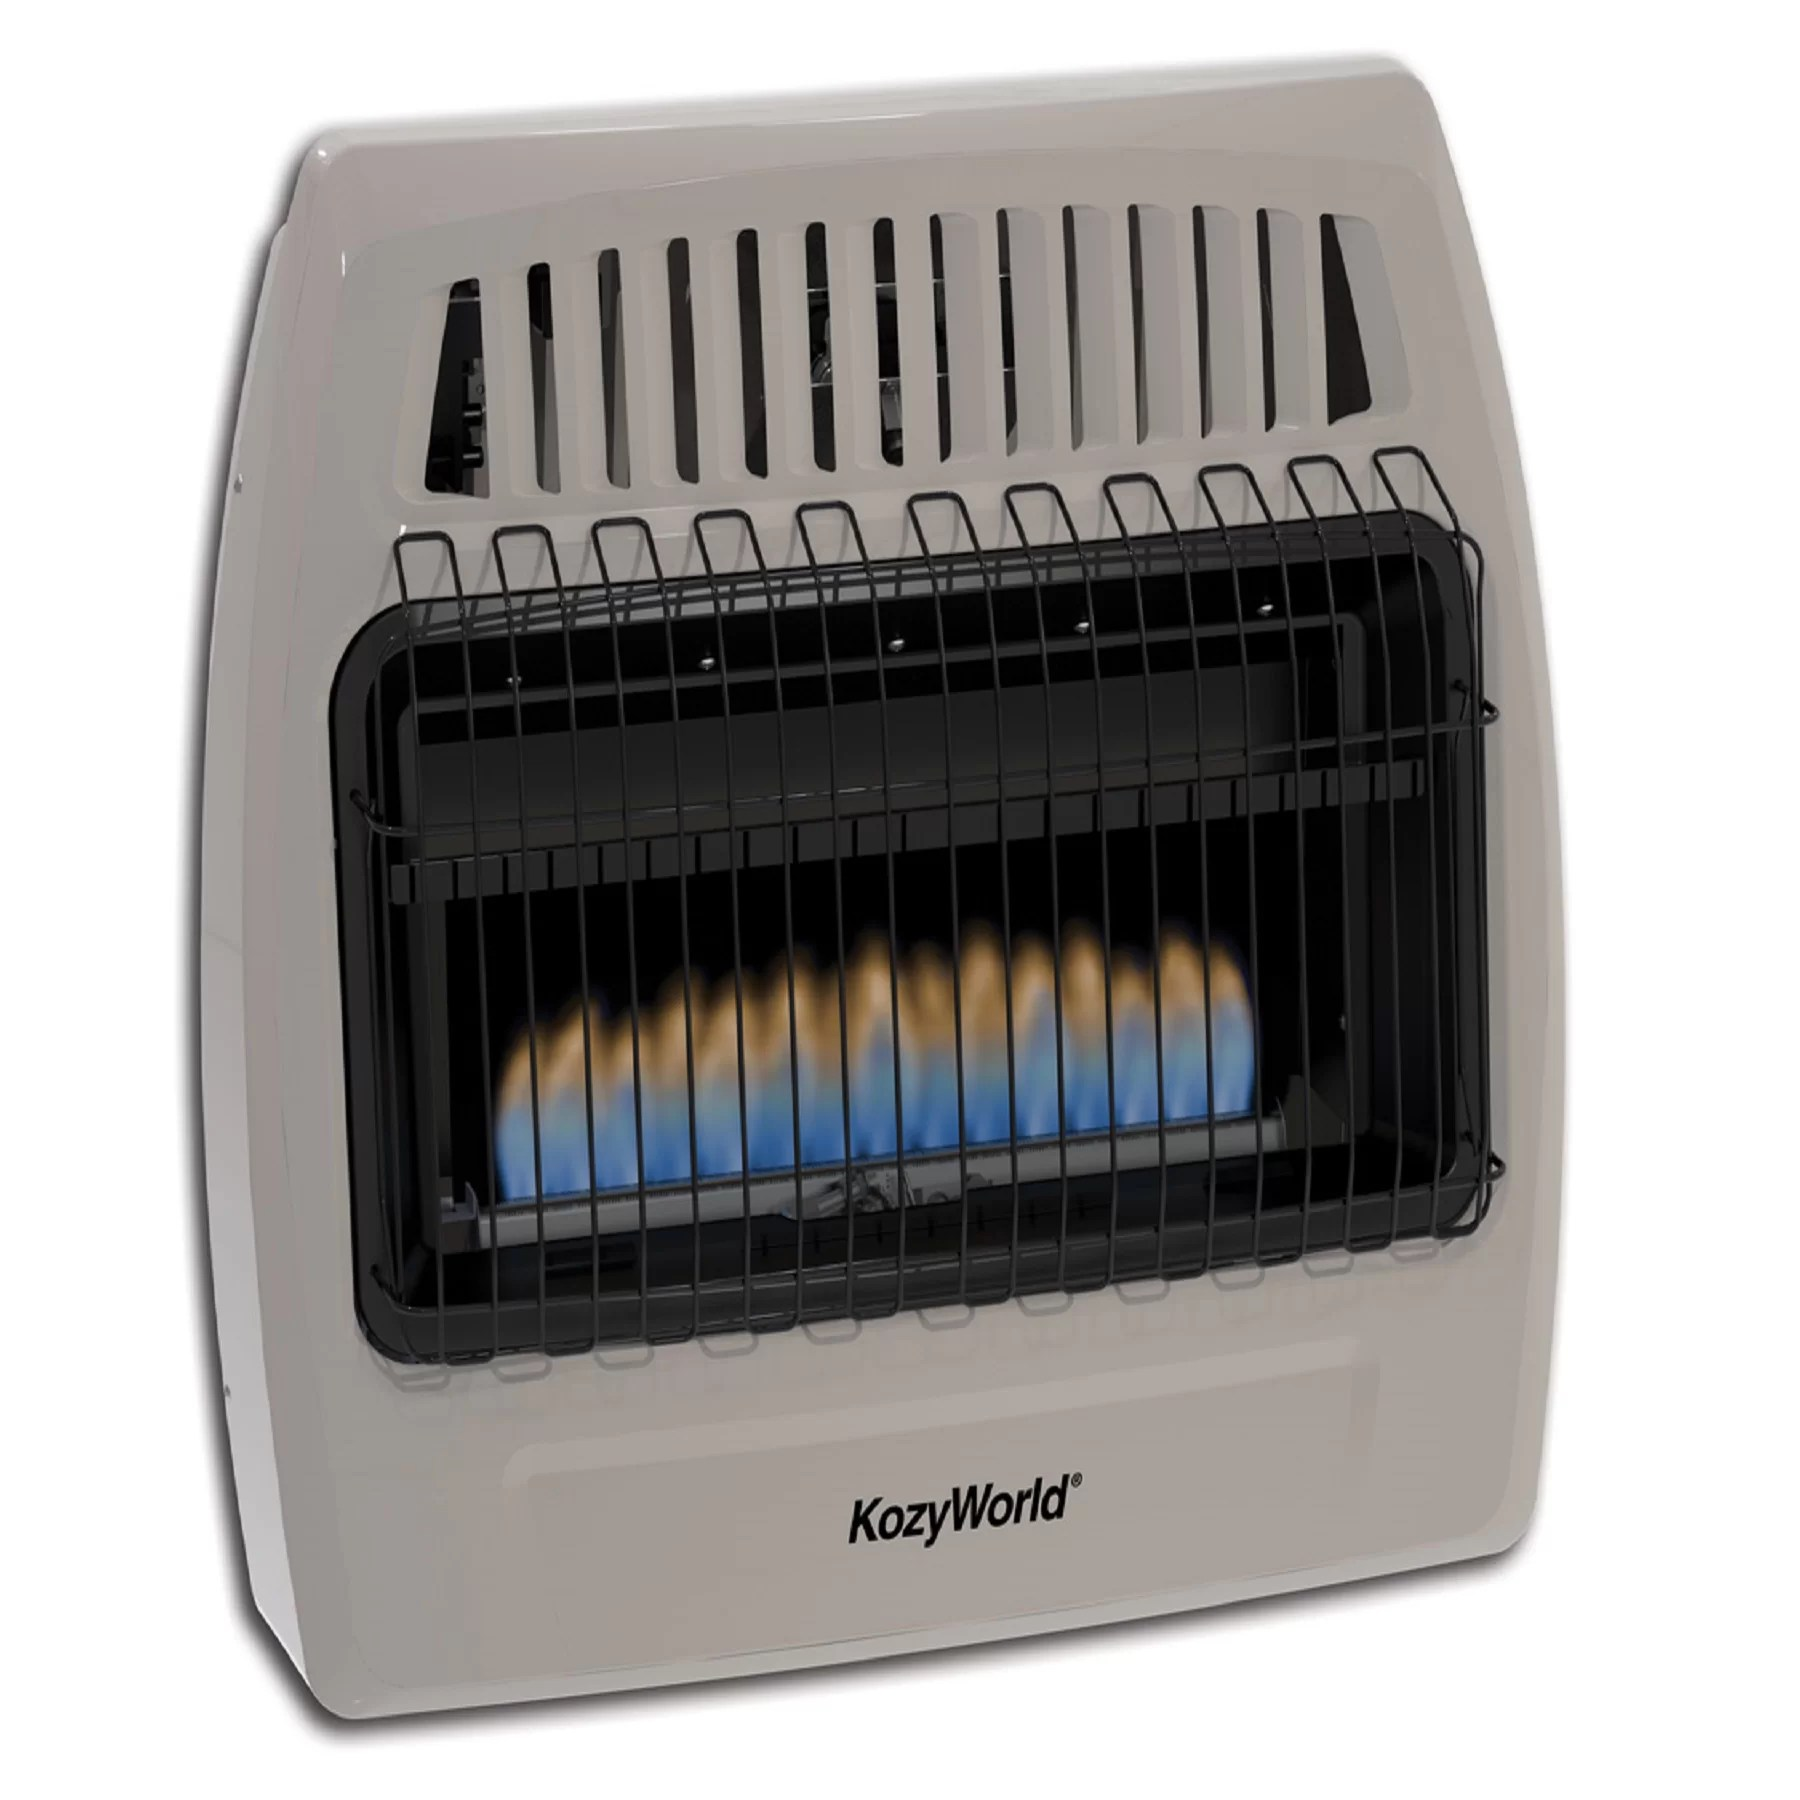 KozyWorld 30,000 BTU Wall Mounted Natural Gas Heater